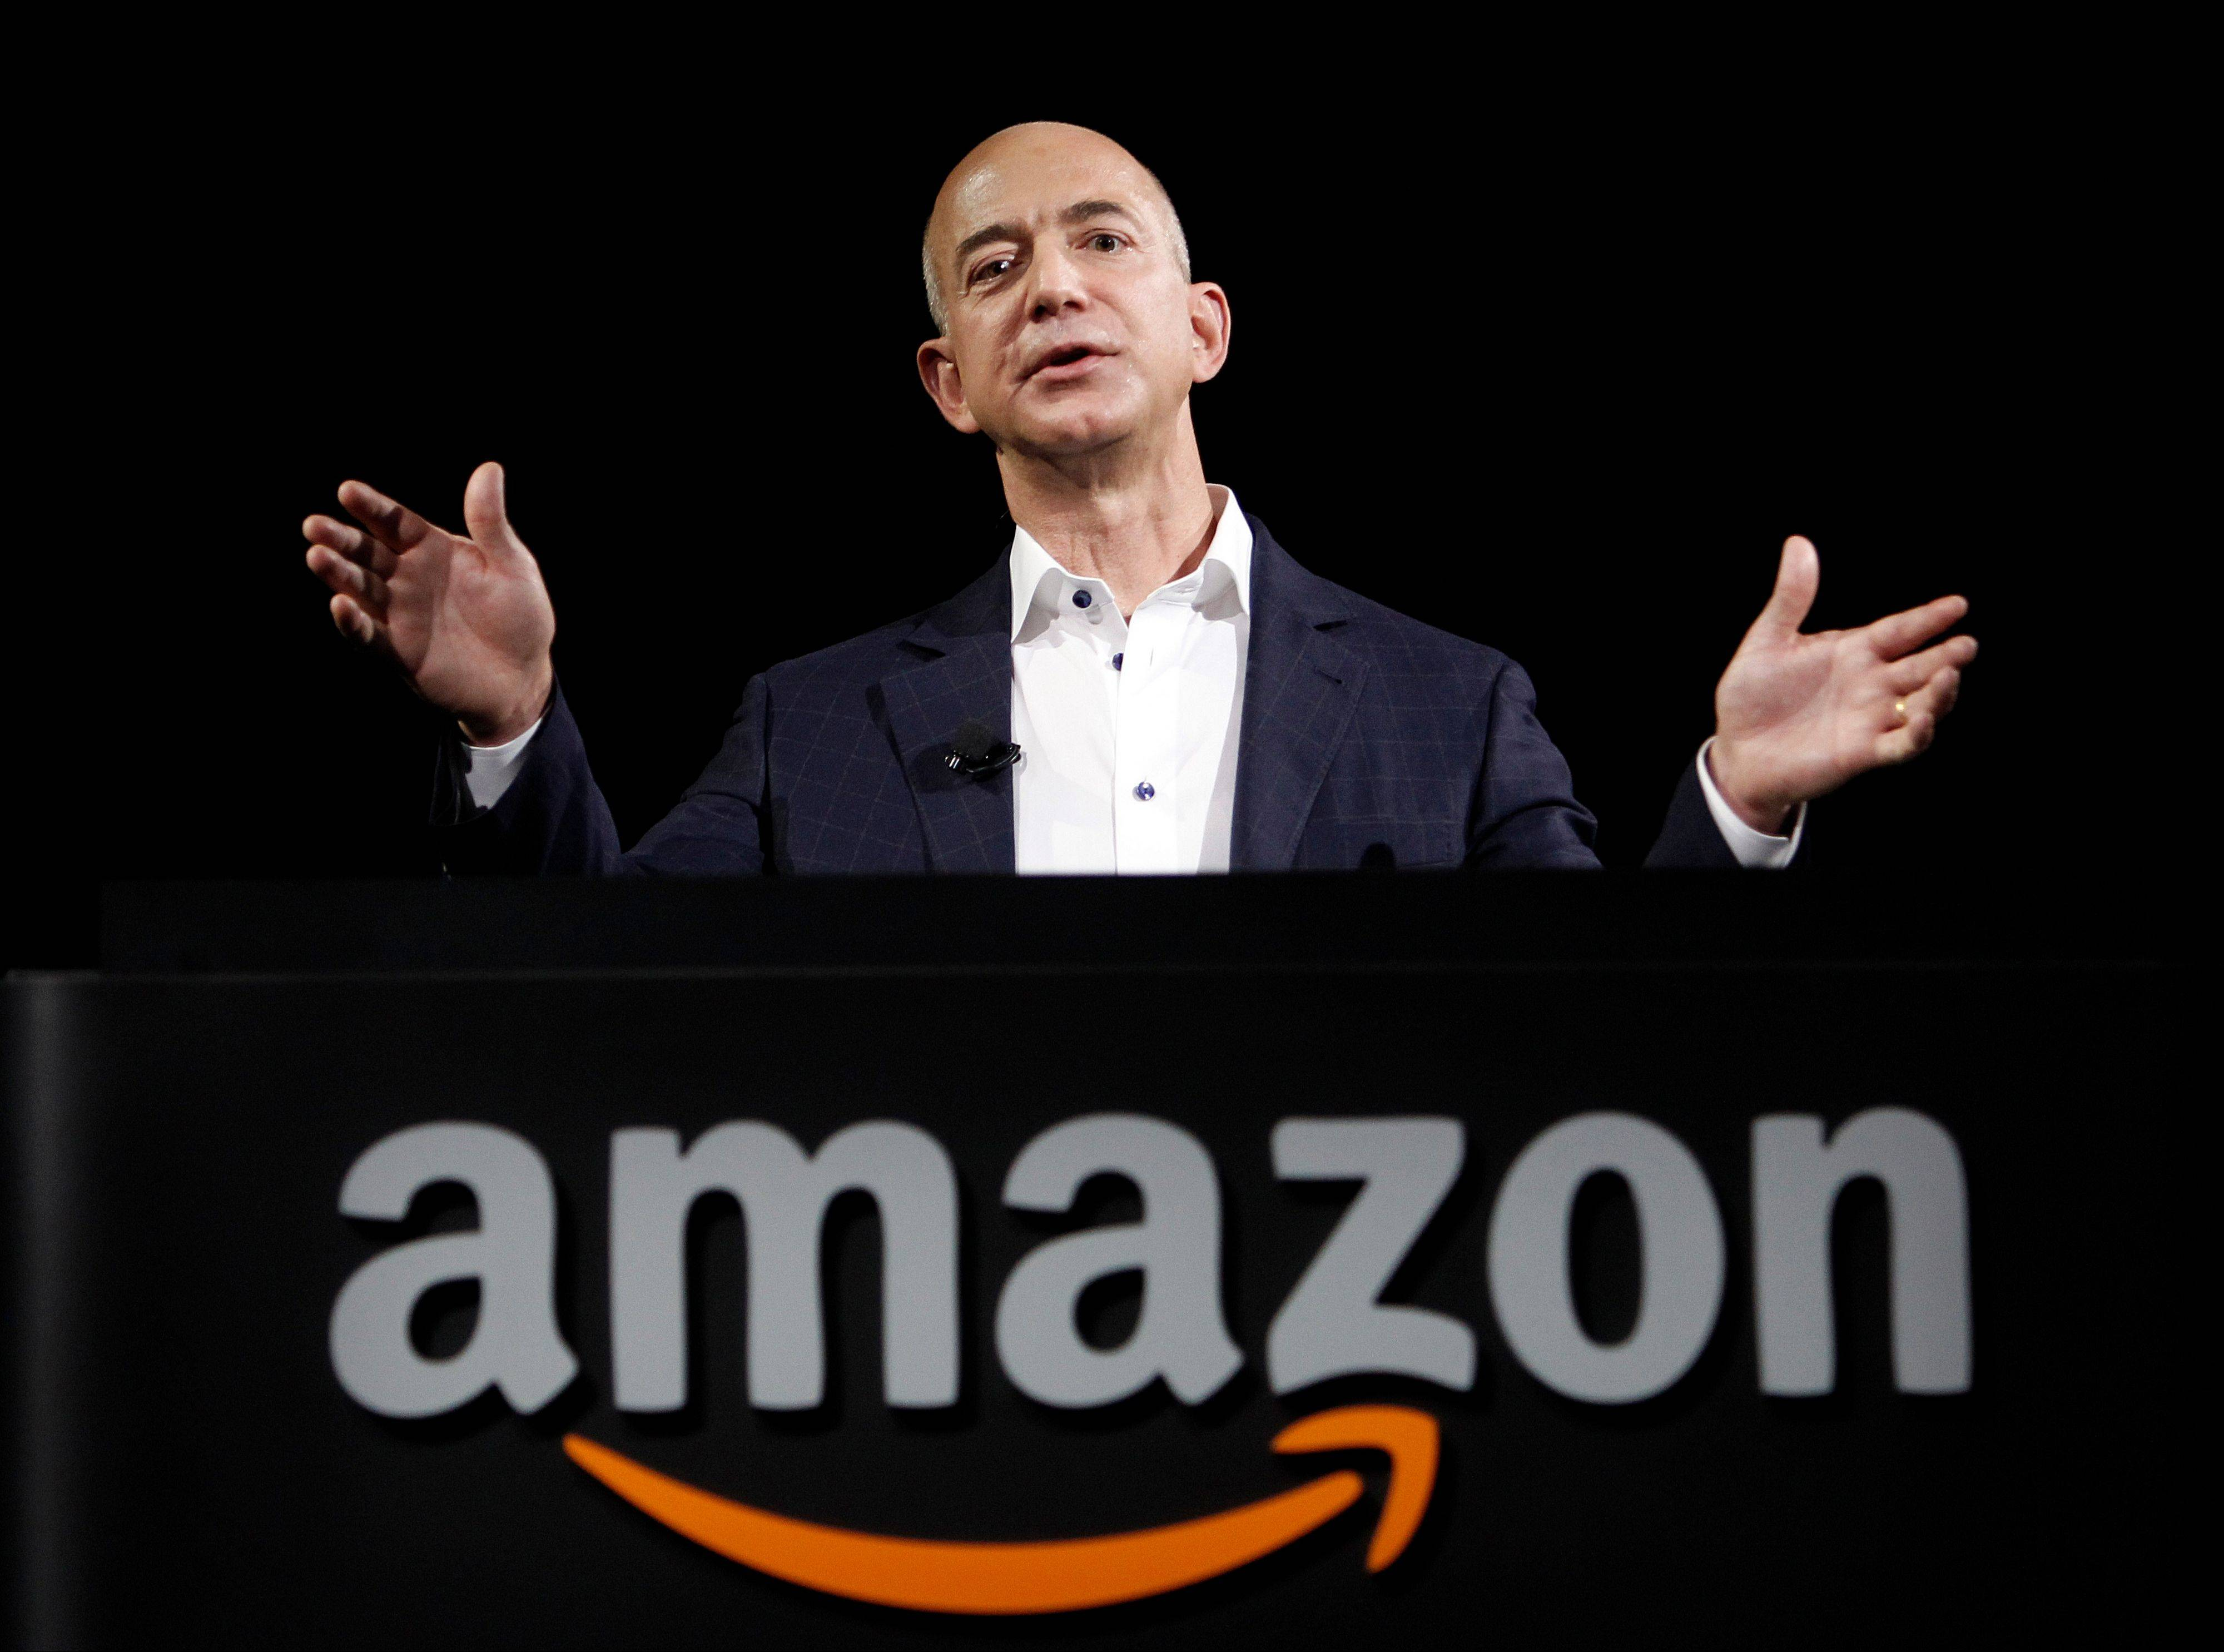 Jeff Bezos turned selling books online into a multibillion-dollar business that has changed retailing forever. Many are now anxious to see if Bezos can do the same for the media industry, after the Amazon.com founder announced he is buying The Washington Post and other newspapers for $250 million.